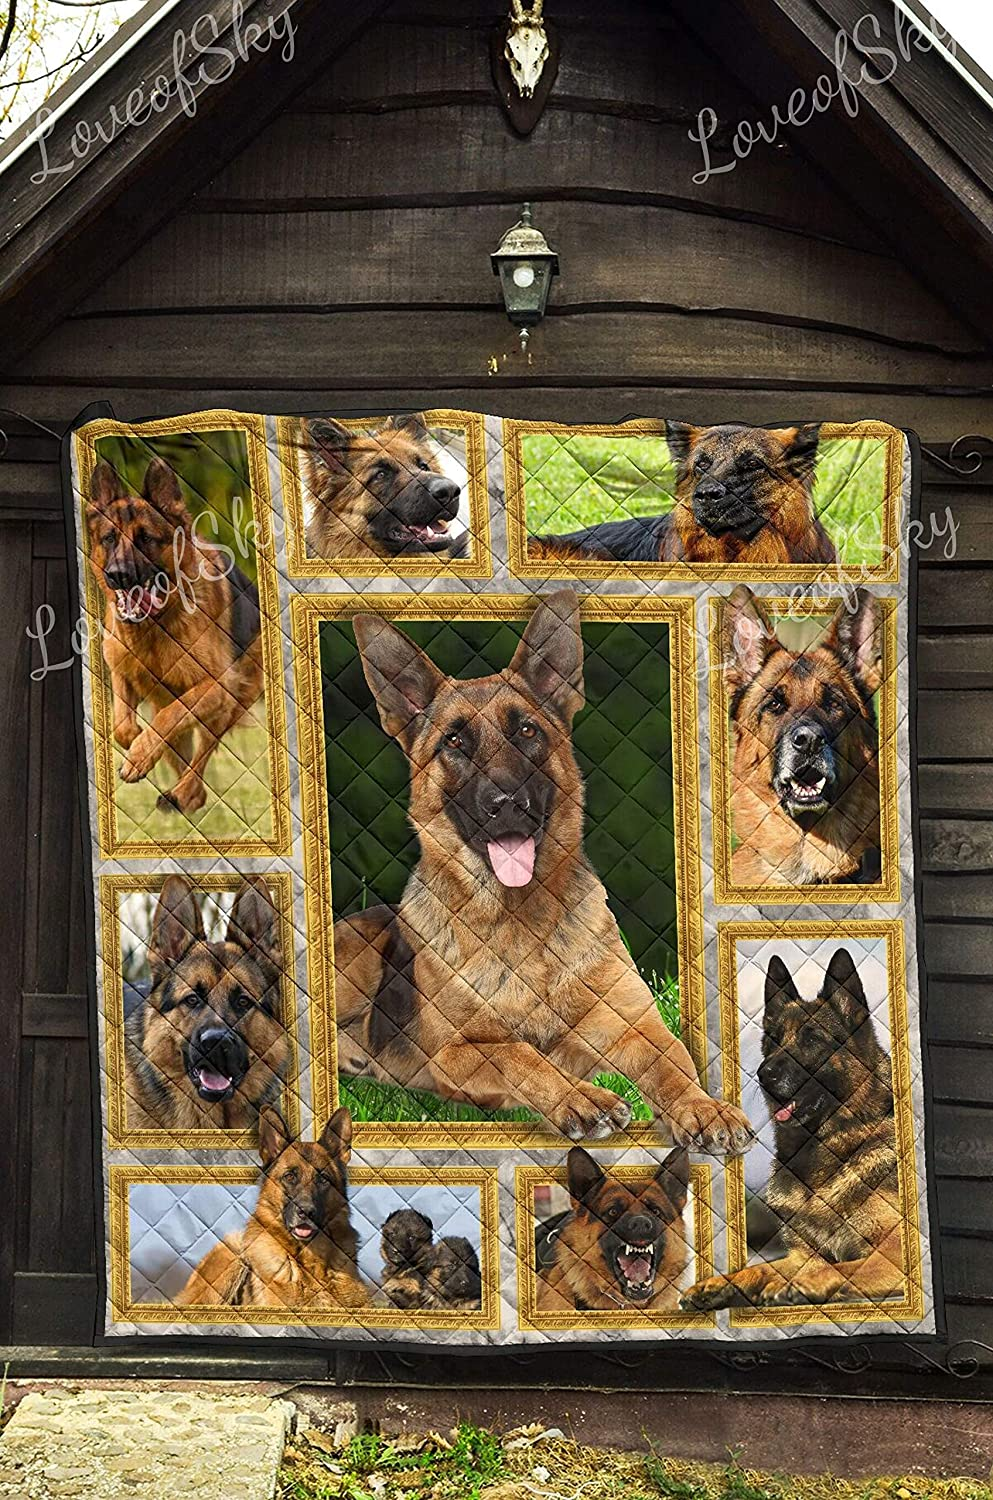 I Love My German Shepherd Quilt Queen Size Blankets King Queen Twin Size Birthday for Dad Mom Husband Wife Kids Son Daughter